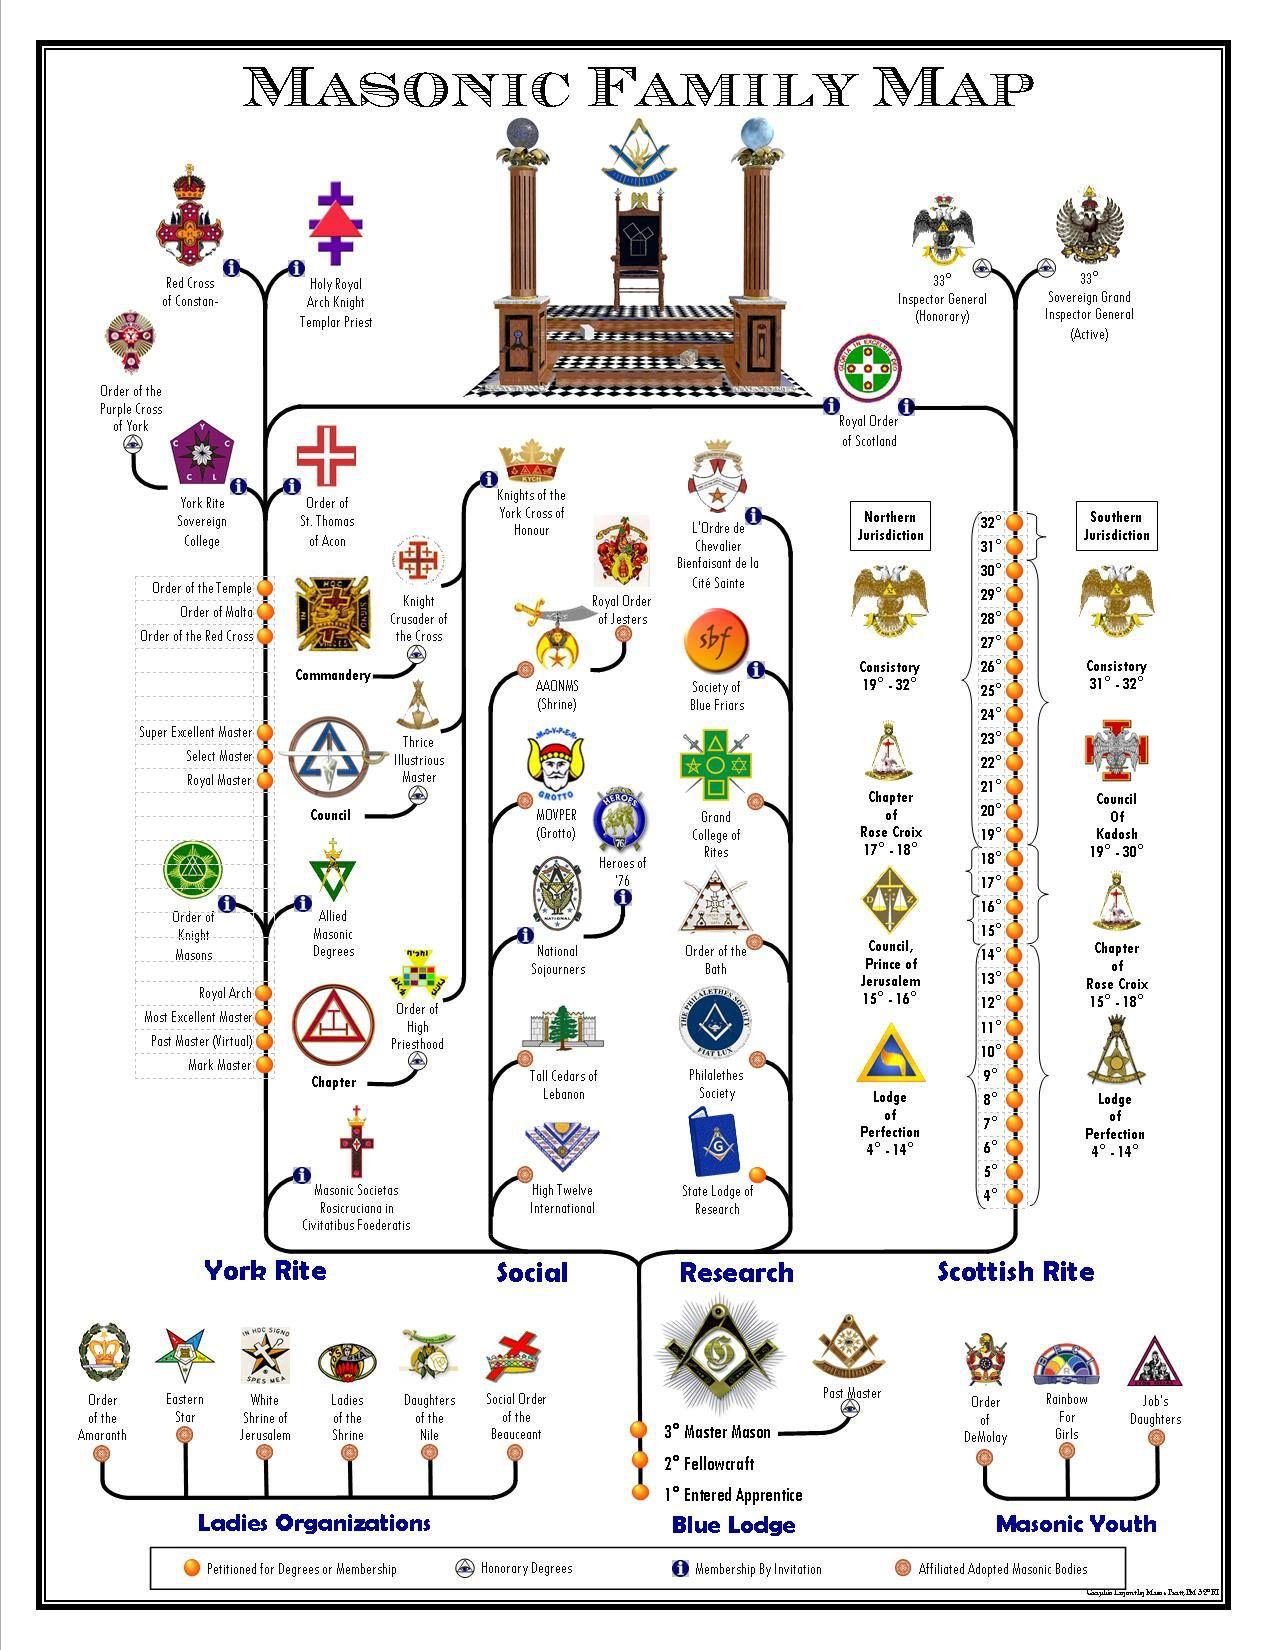 Masonic family map pinteres masonic family map biocorpaavc